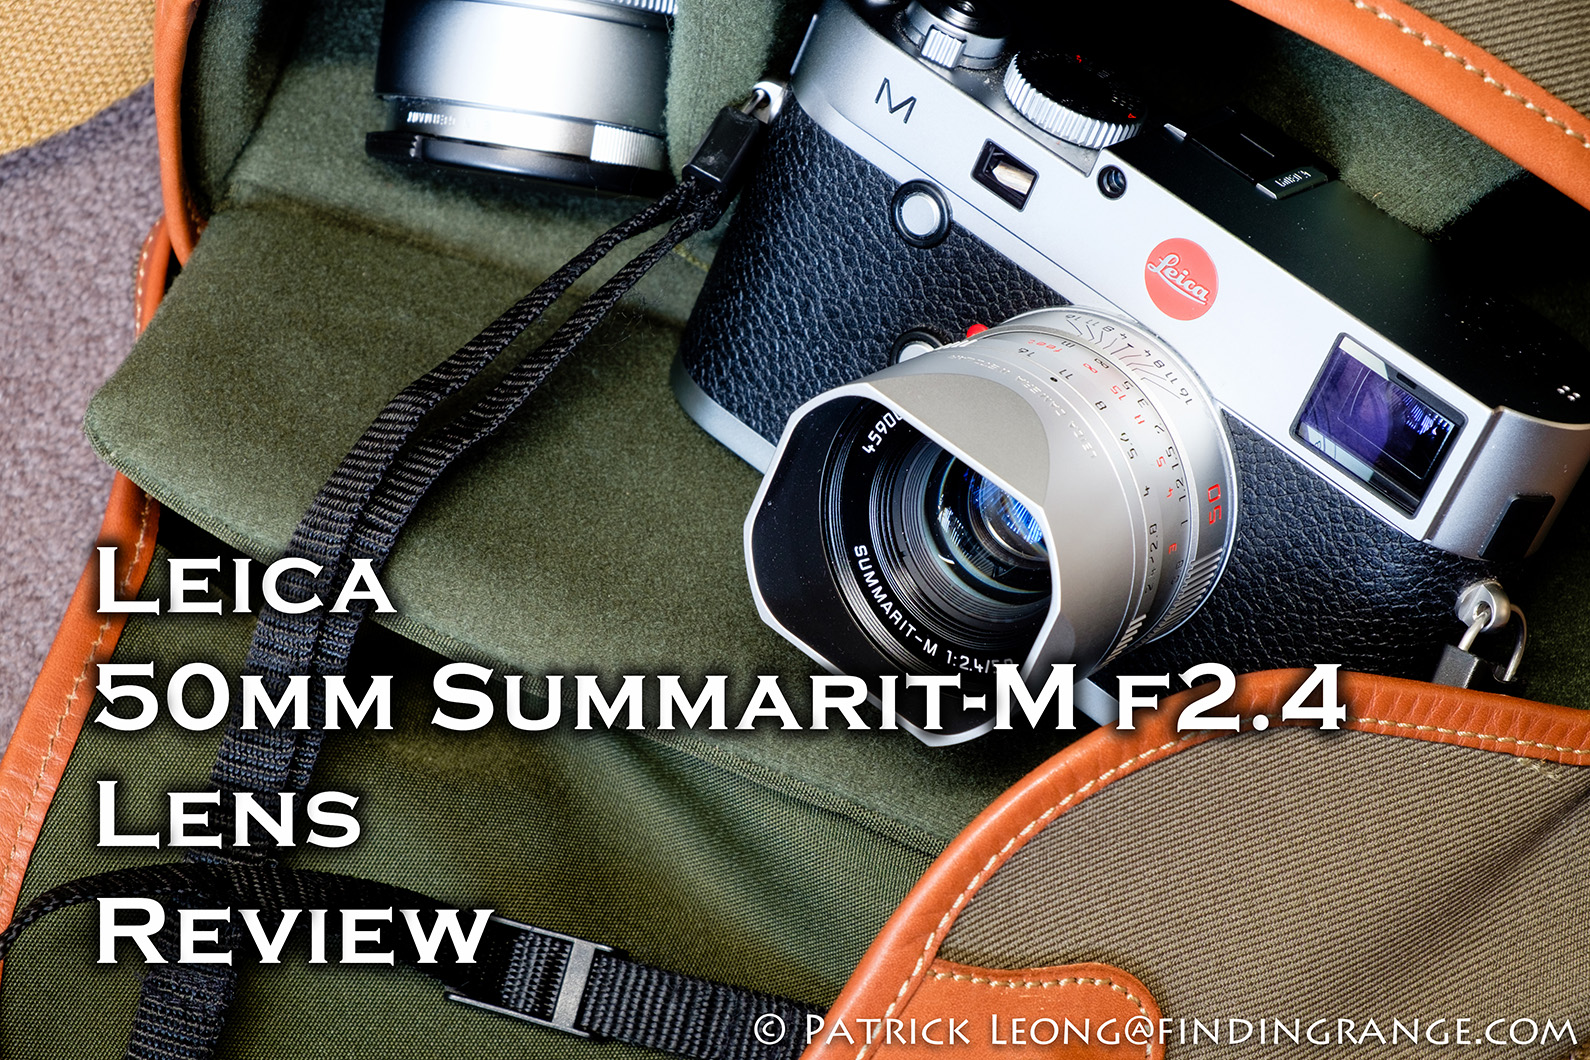 Leica-M-Typ-240-50mm-Summarit-M-f2.4-Review-3